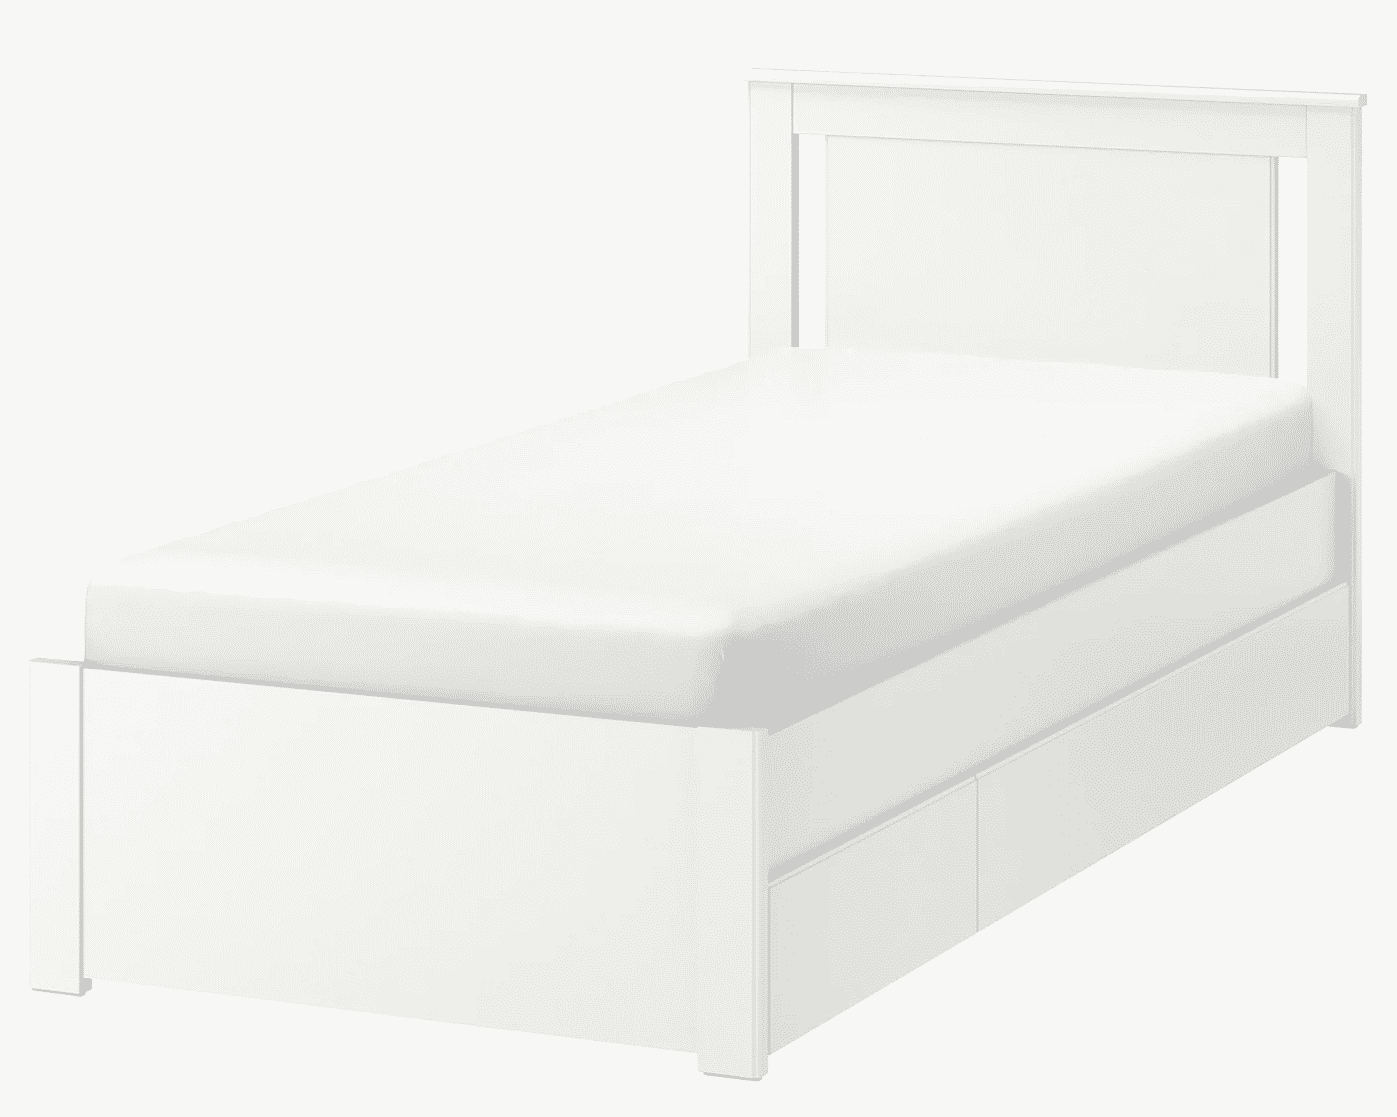 The Songesand Bed Frame with Two Storage Boxes